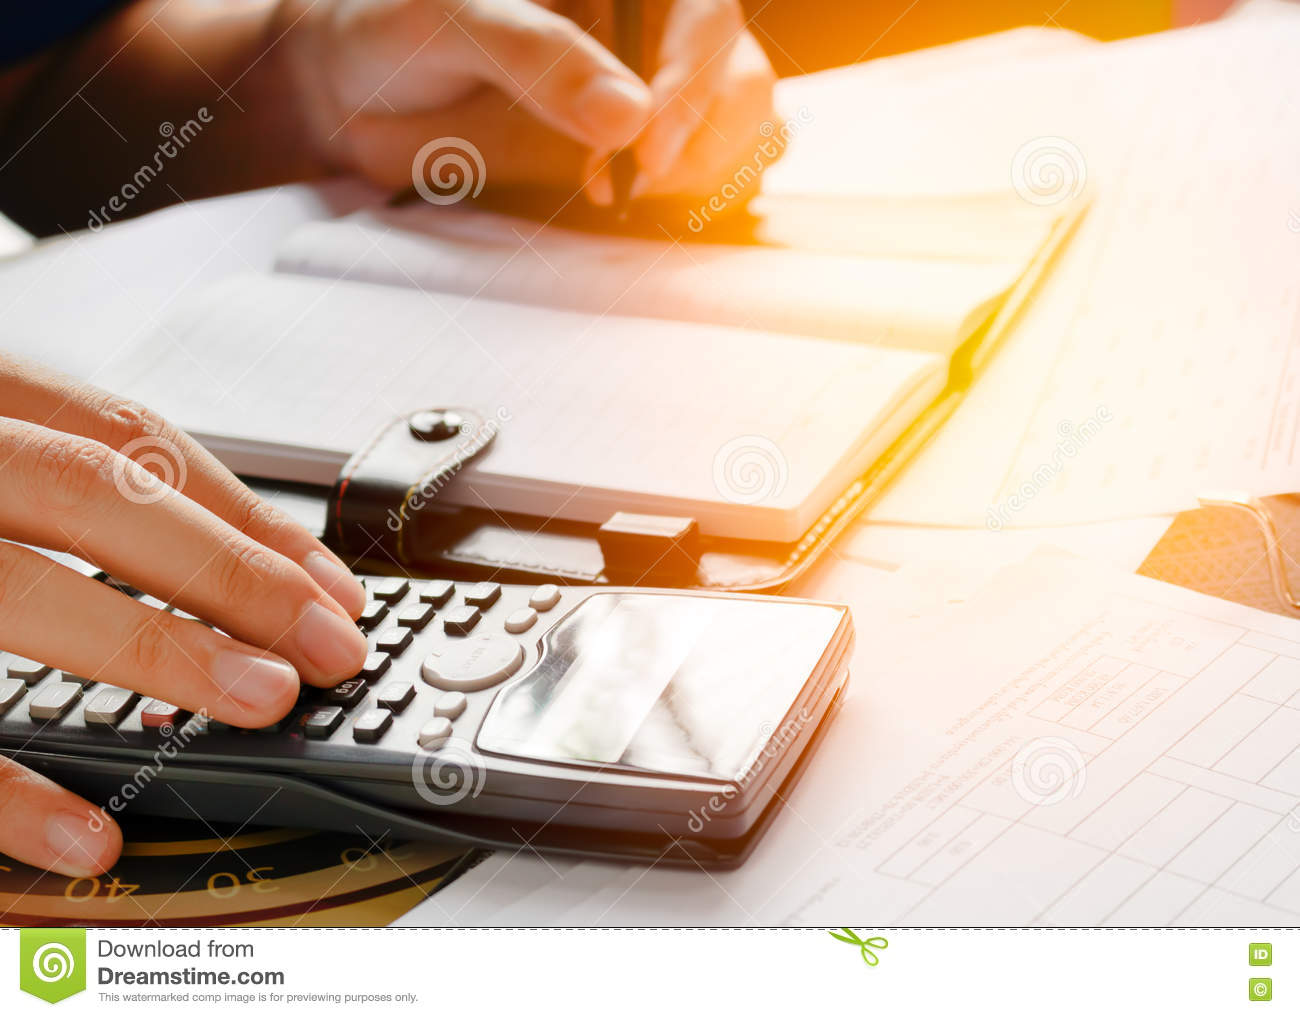 Close up, business man or lawyer accountant working on accounts using a calculator and writing on documents,